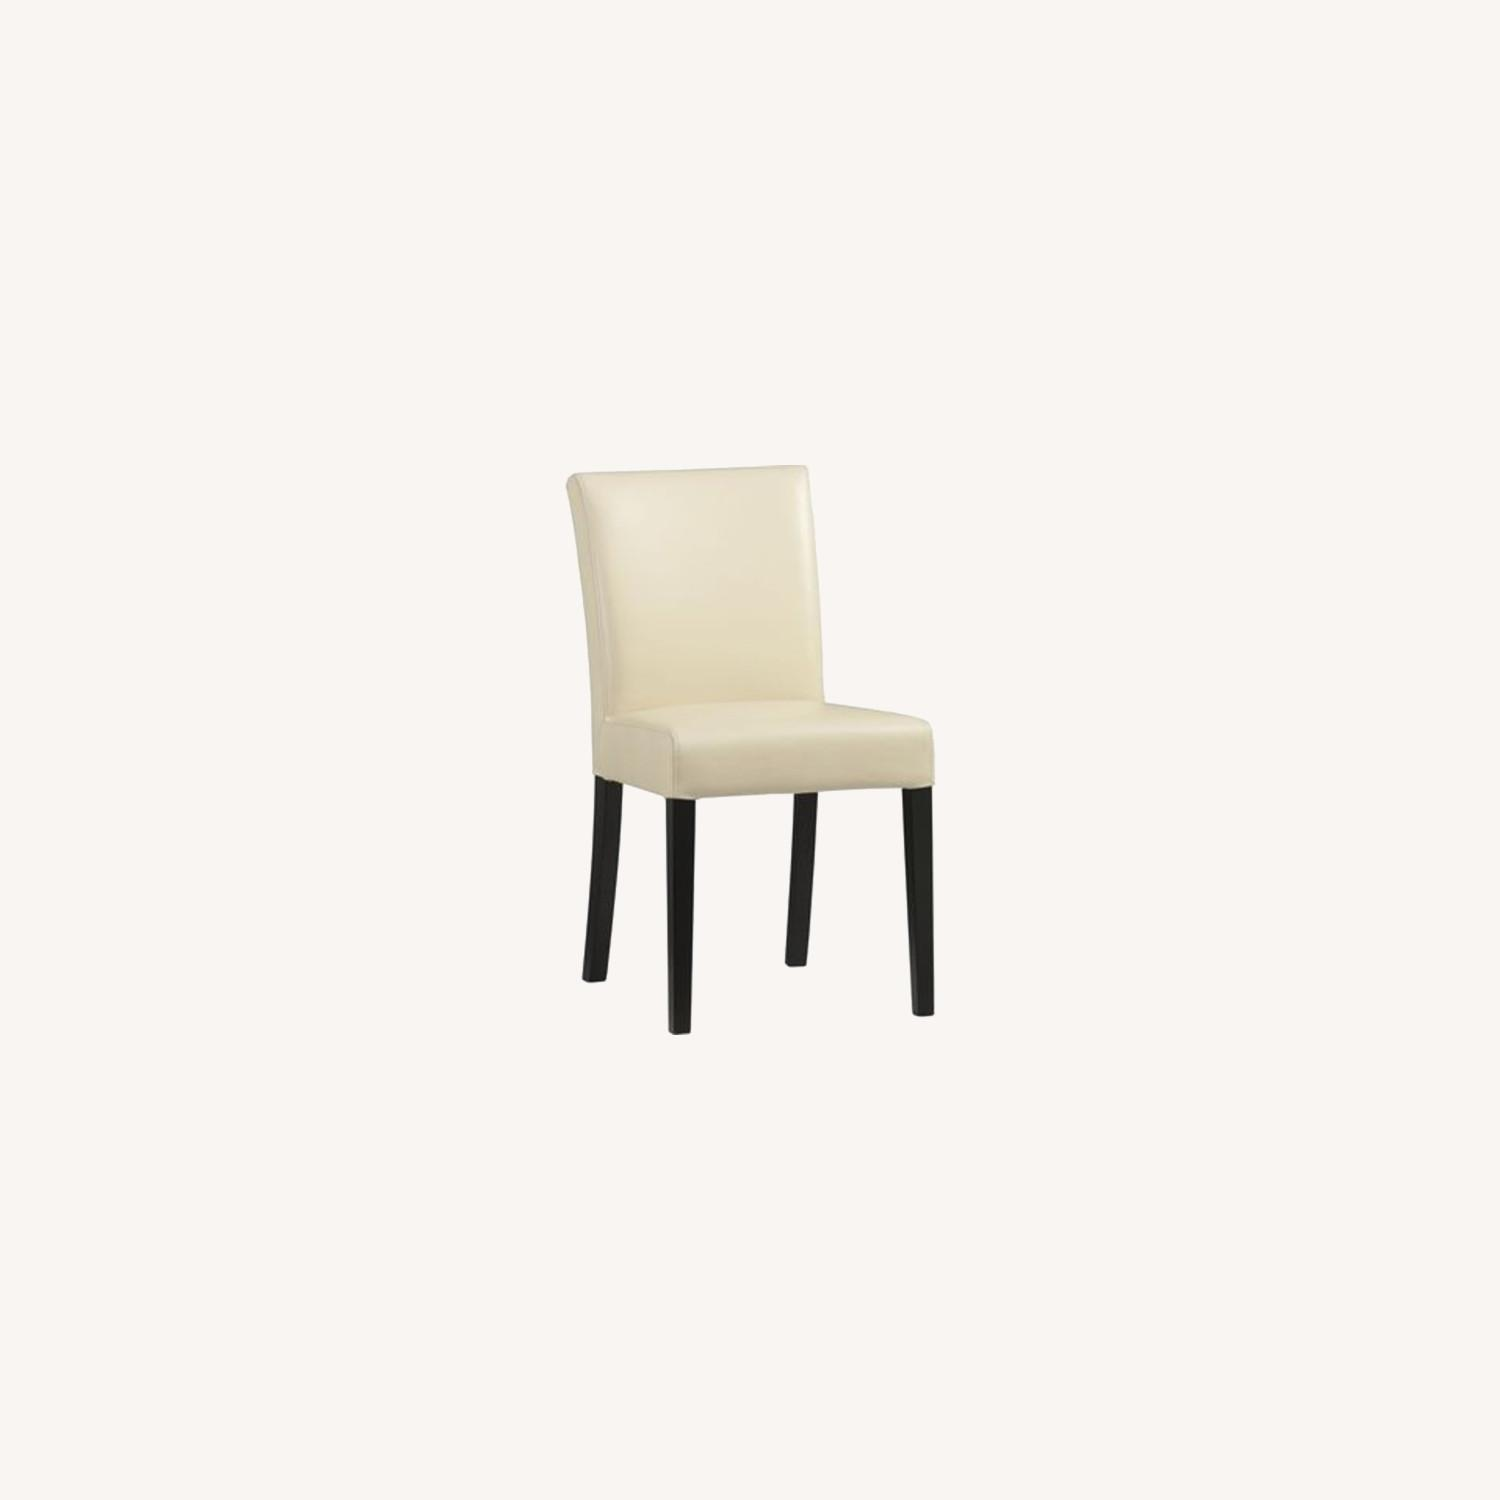 Crate & Barrel Lowe Ivory Leather Dining Chair - image-0